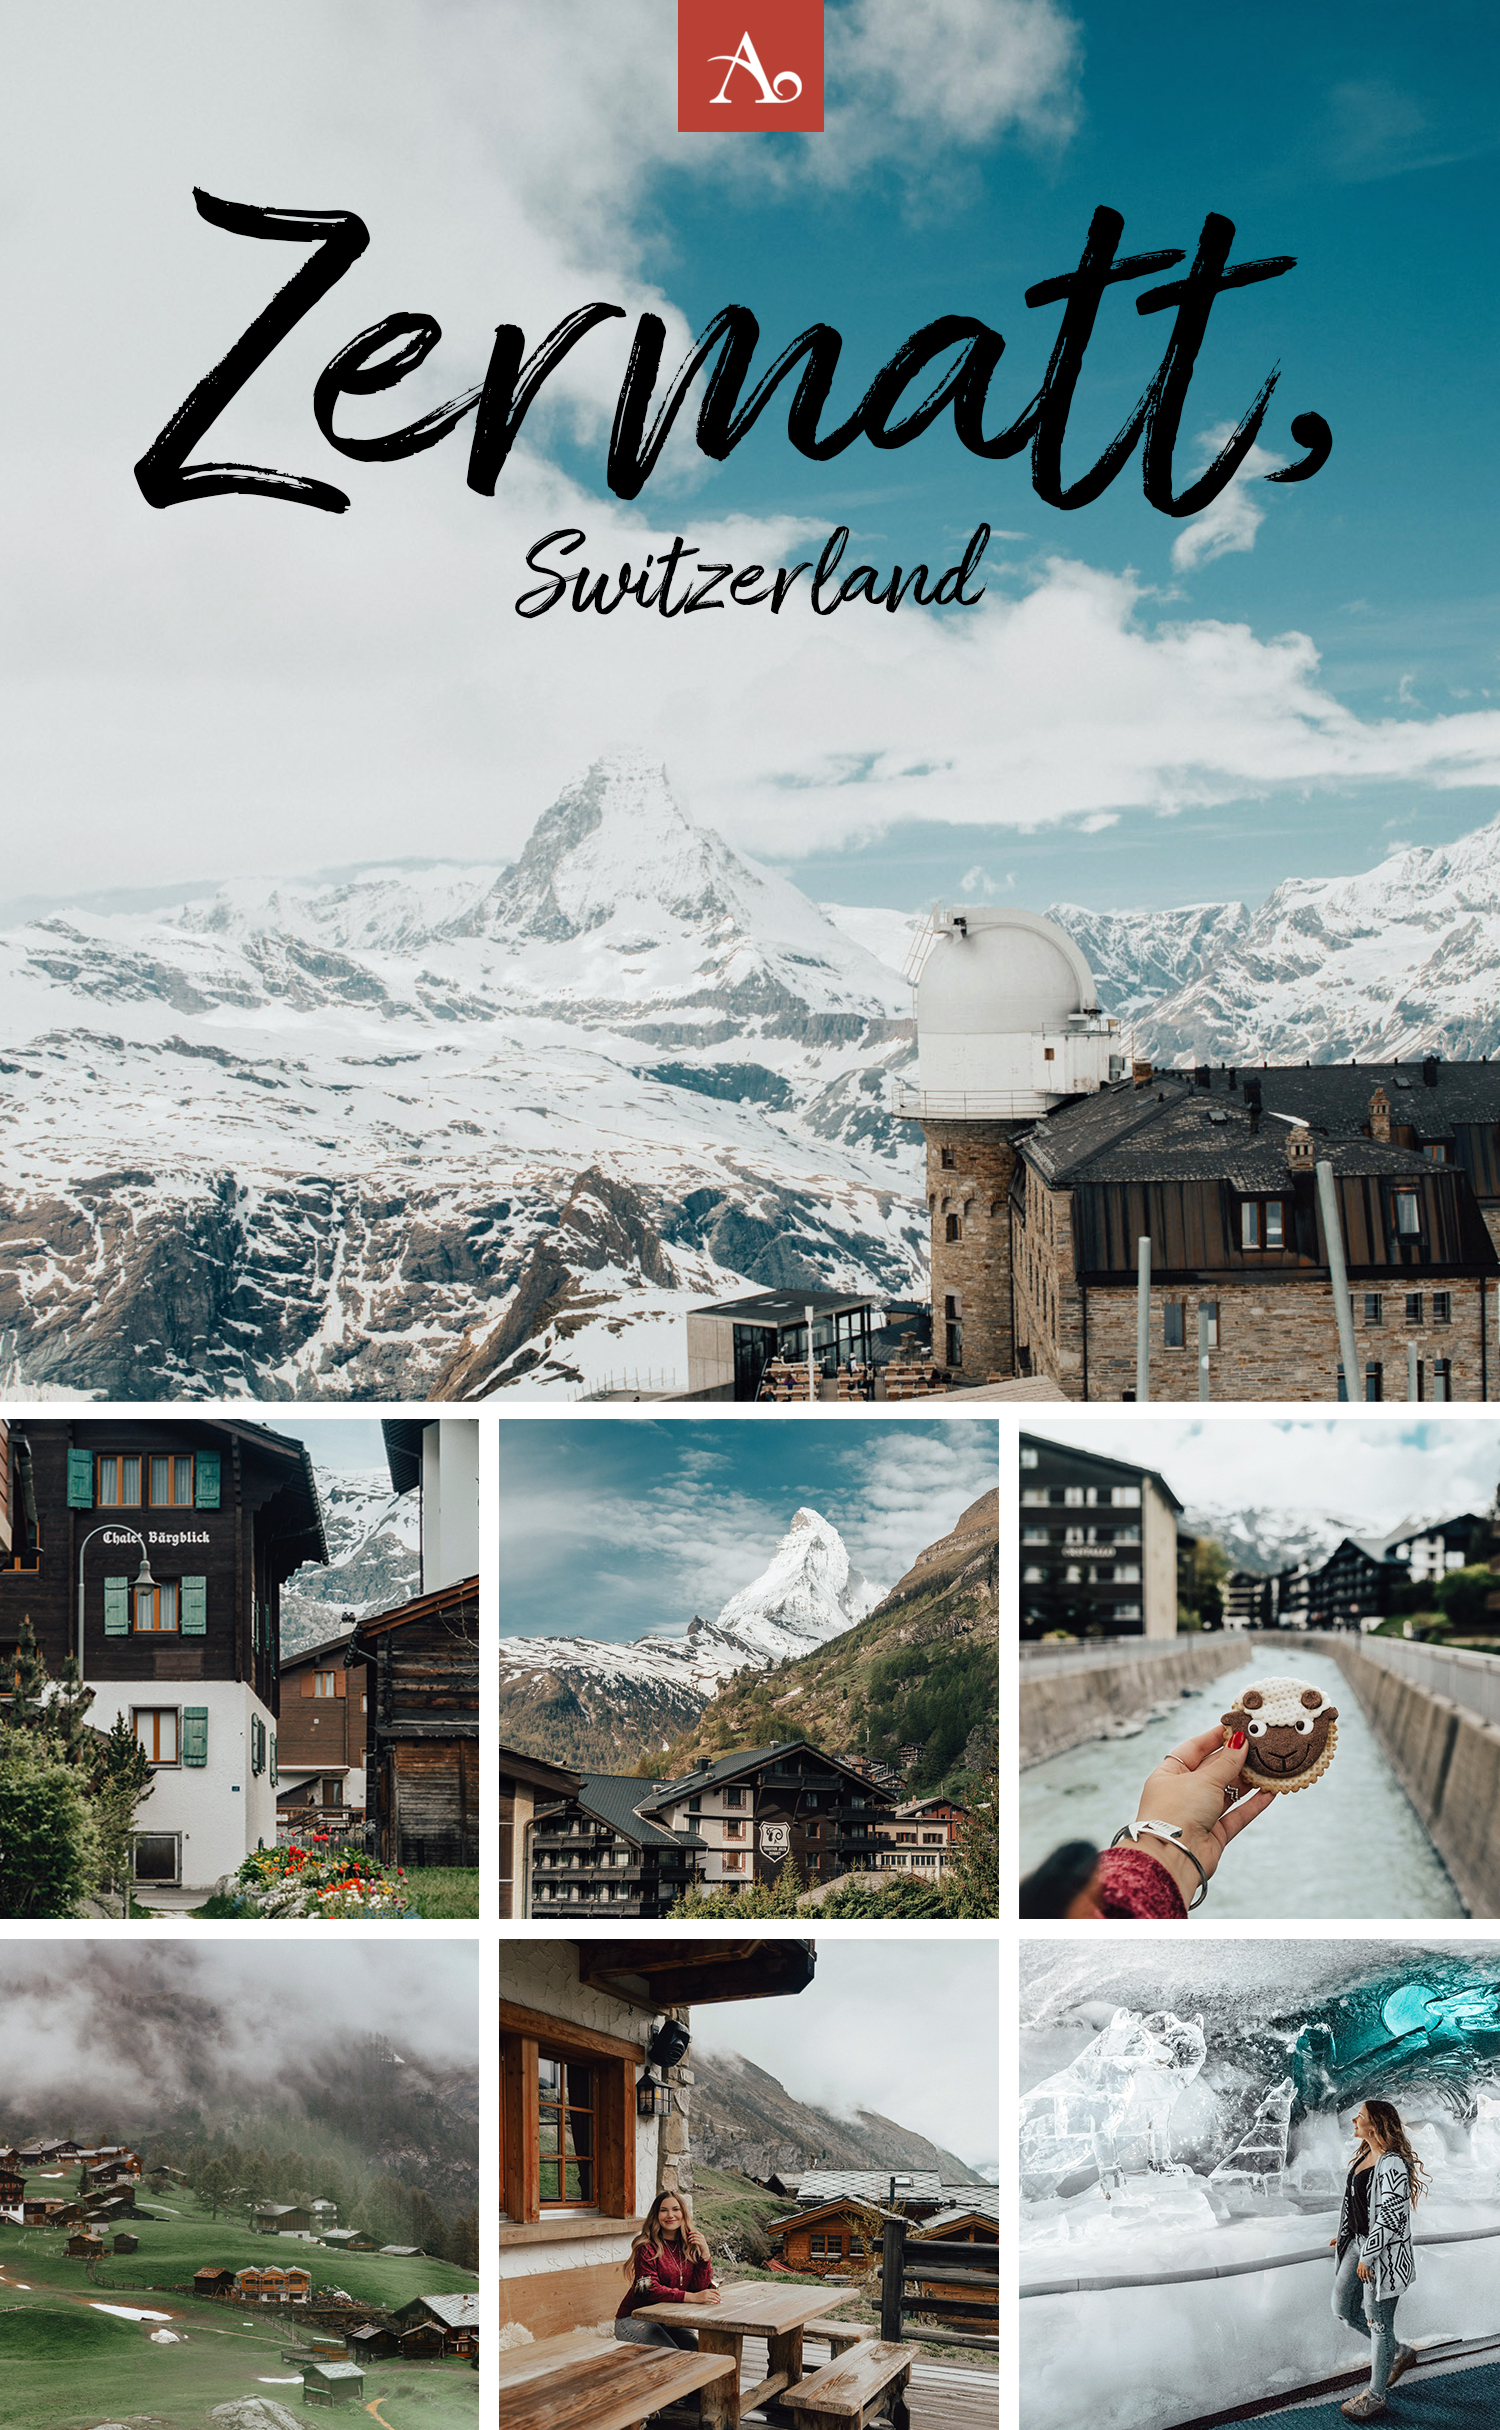 Things to Do in Zermatt, Switzerland